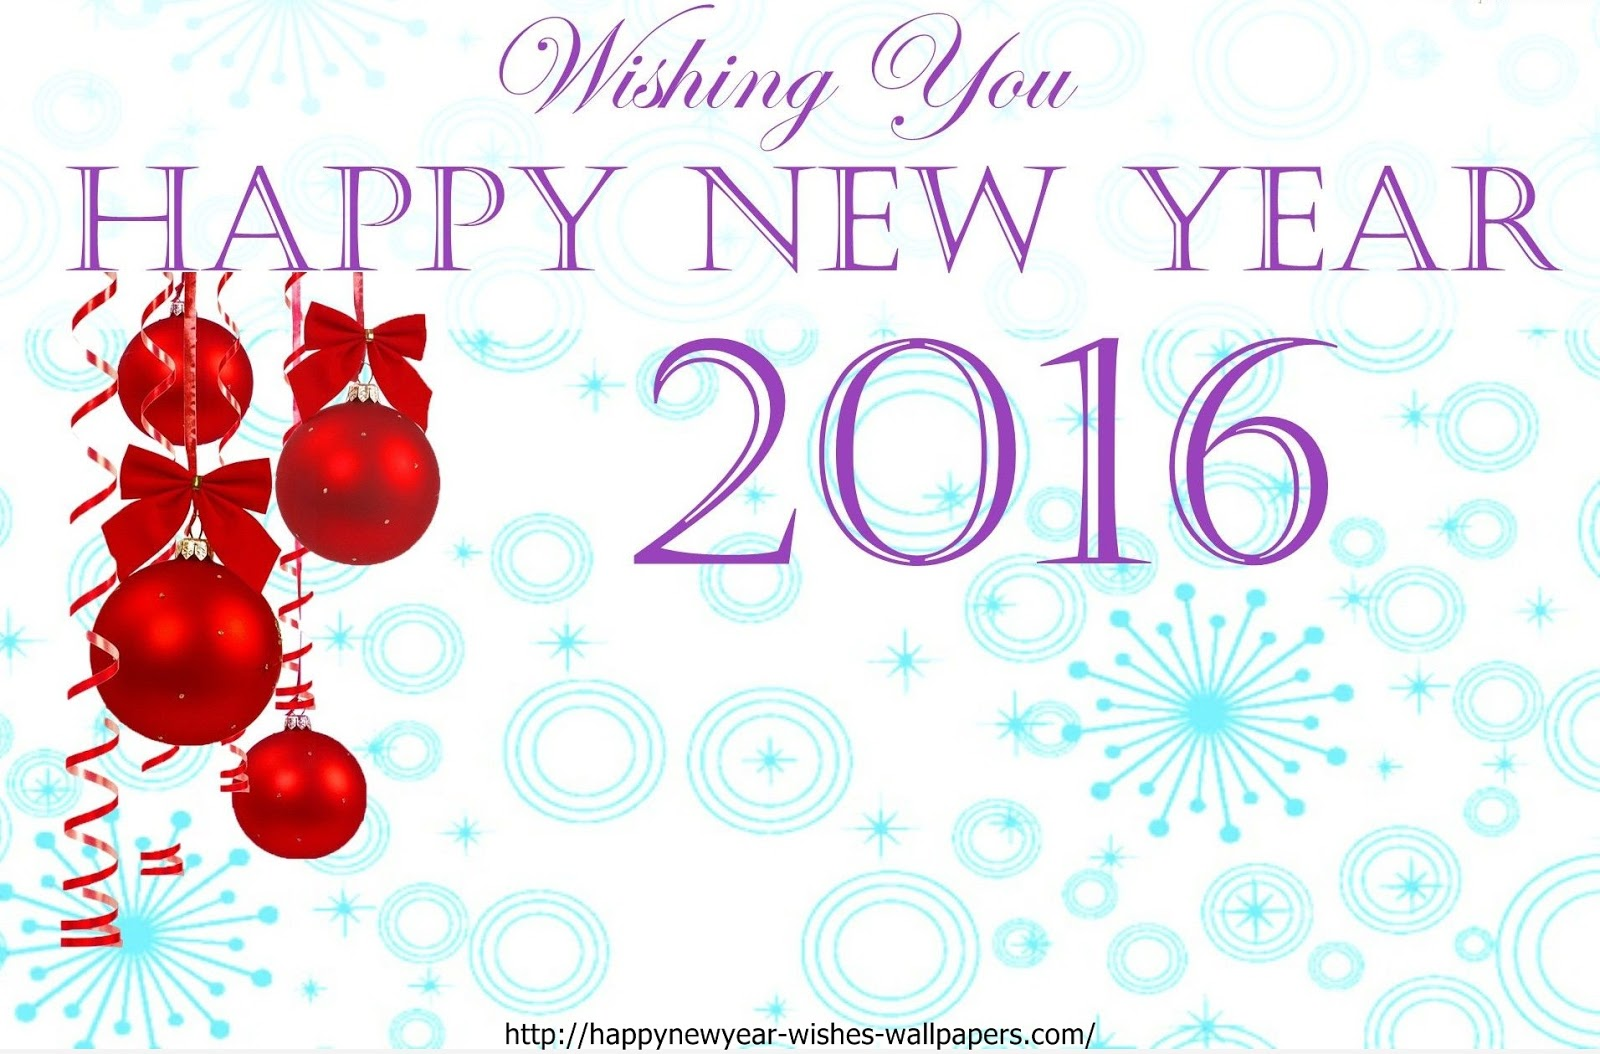 New year 2016 wallpapers wishes happy new year gretings card happy new year gretings card designs for your family hd images m4hsunfo